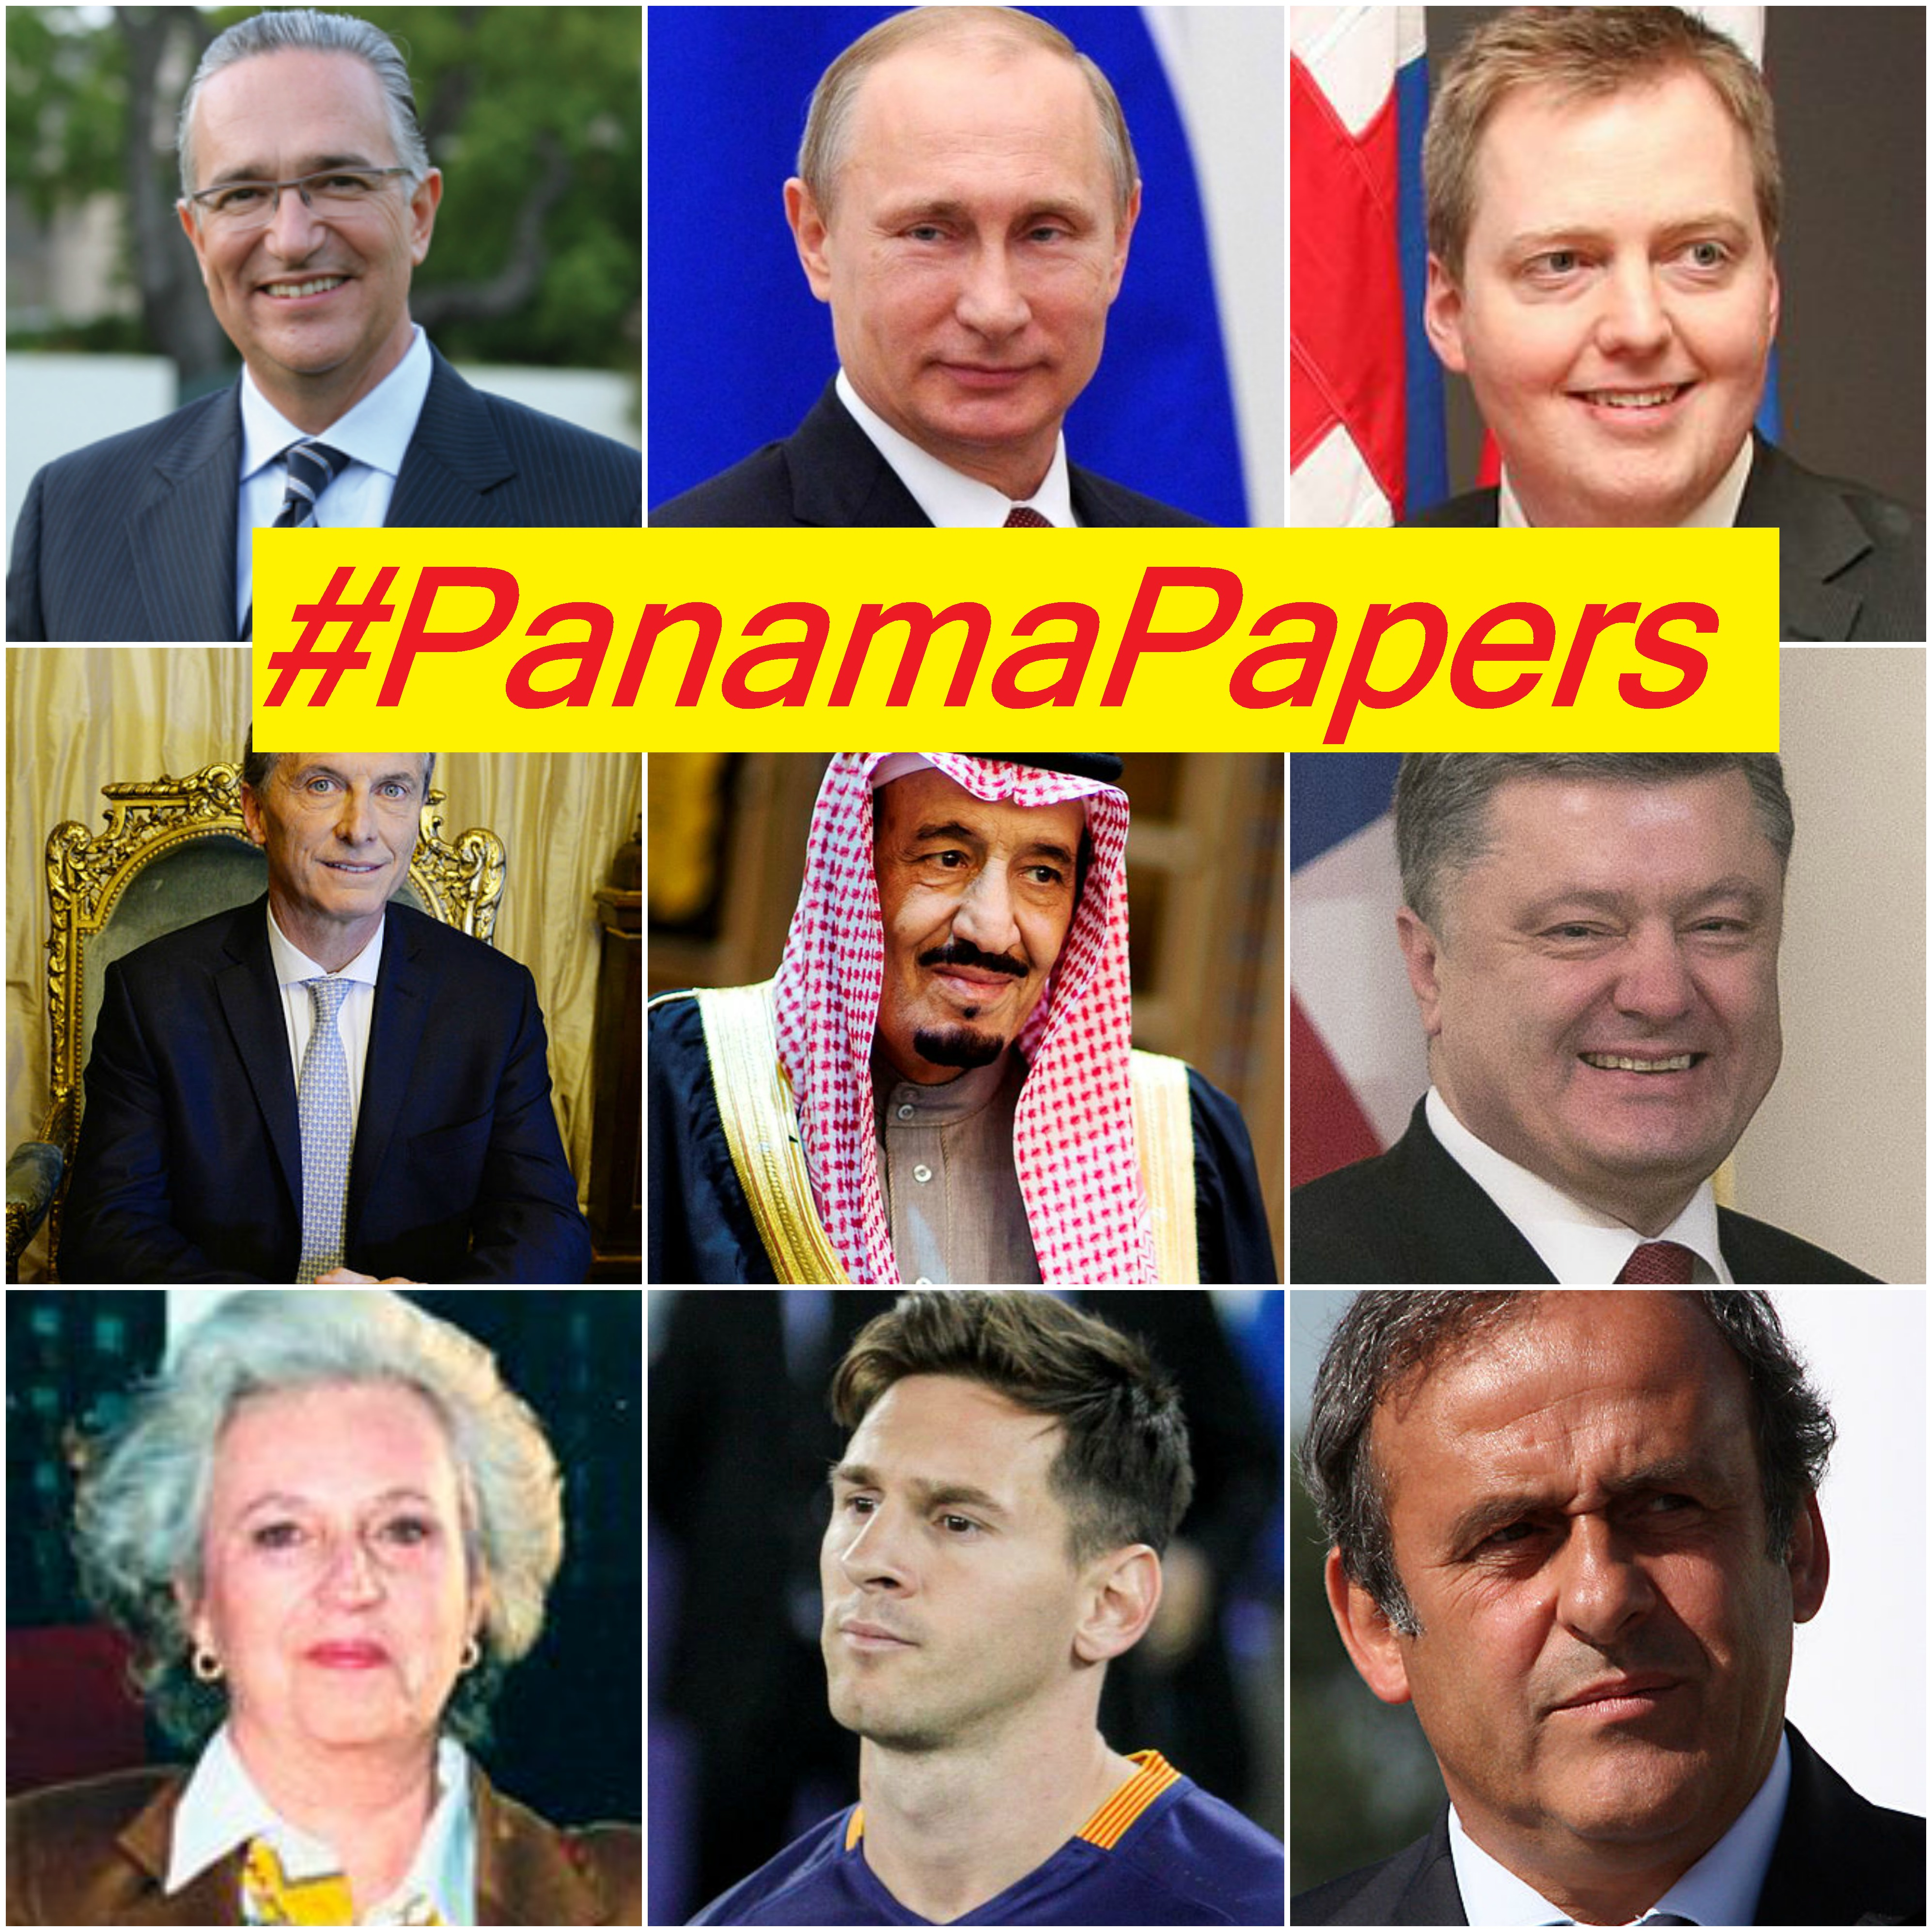 PanamaPapers_Collage